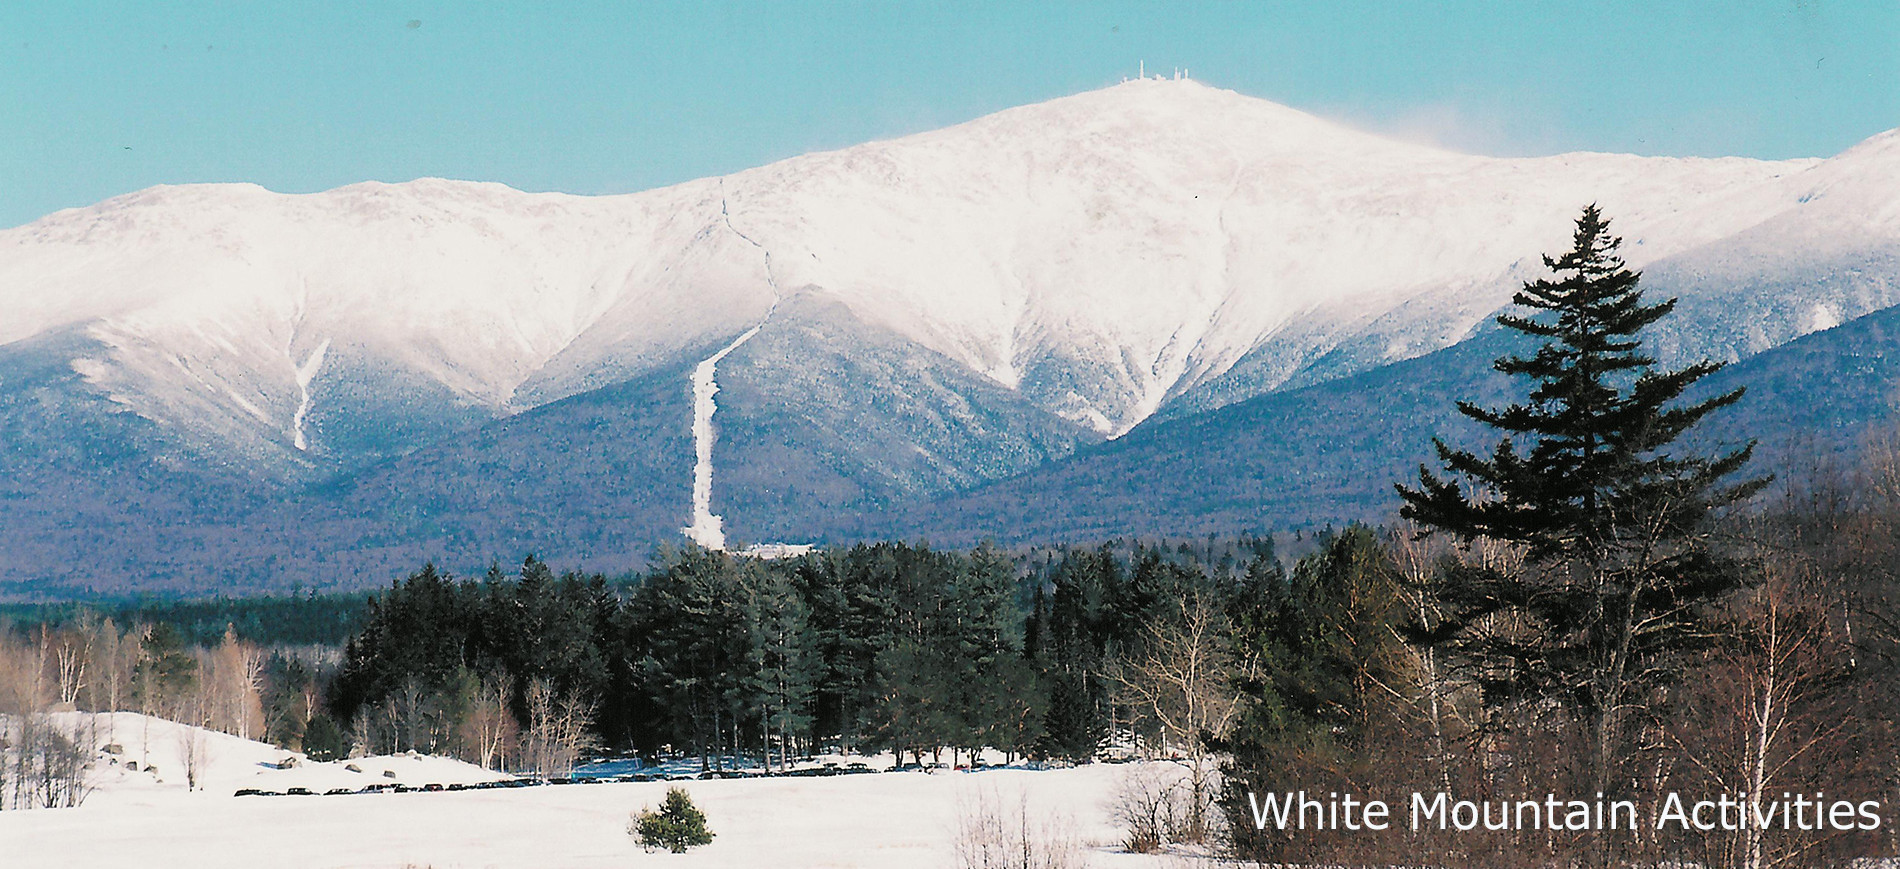 Mount Washington in snow from Bretton Woods ~ White Mountain Activities